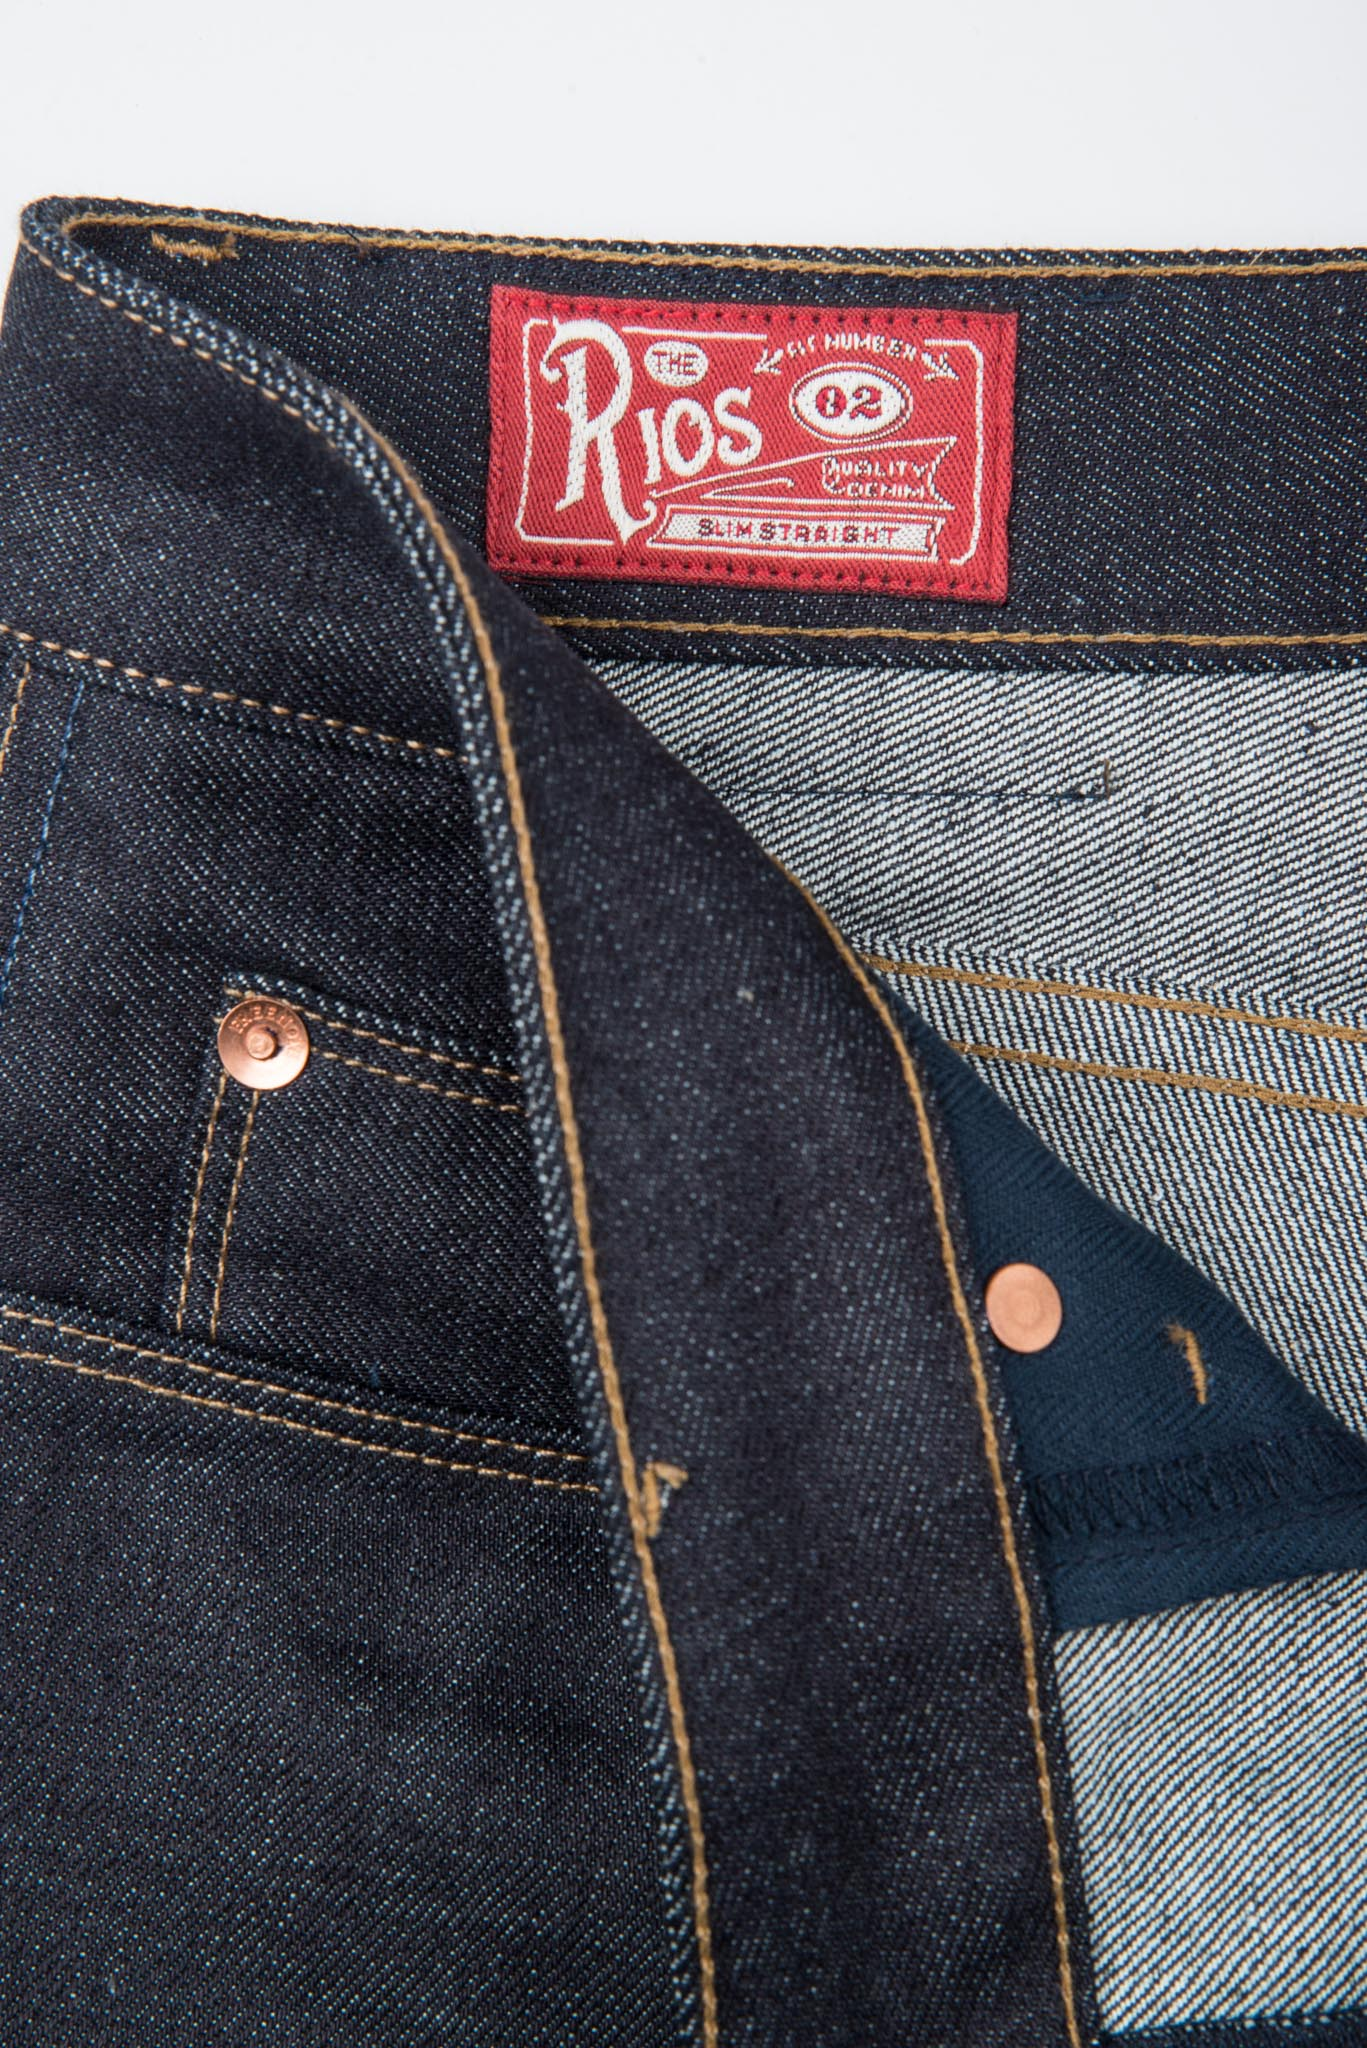 Rios <span>14.50 ounce Kaihara Denim</span>